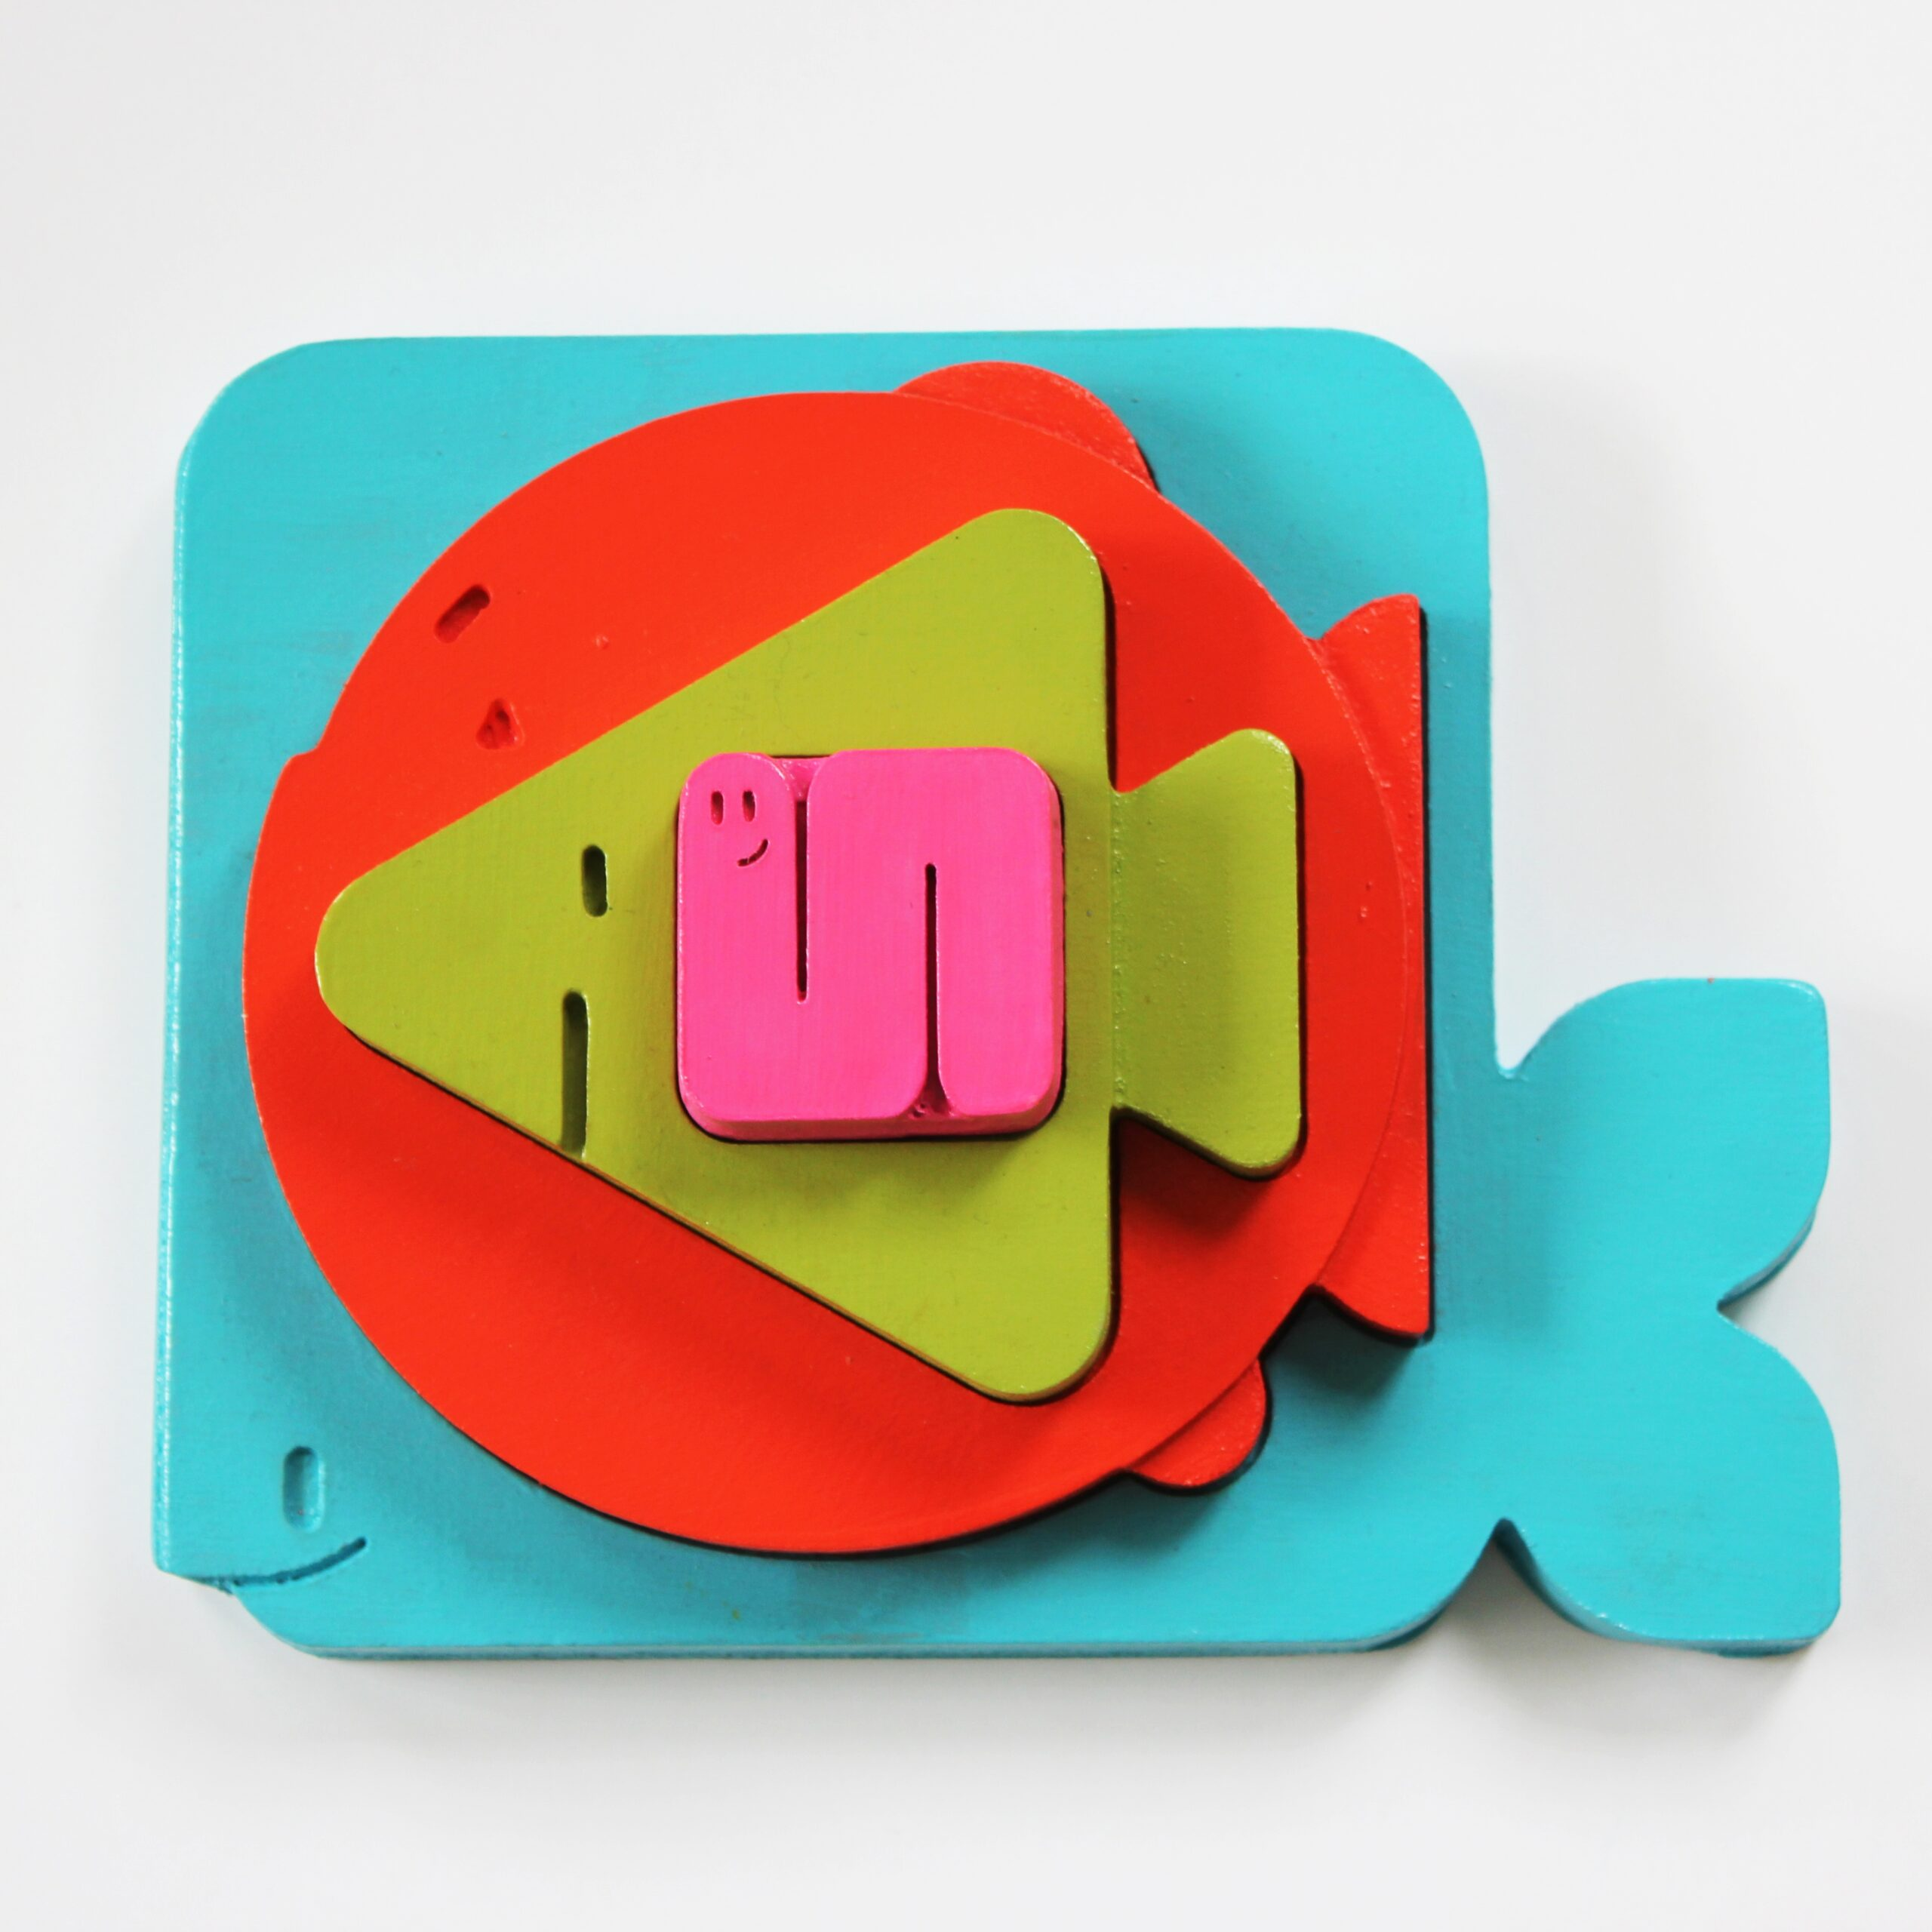 Geometric Wooden Food Chain Stacker Puzzle Piece by Sensory Box Family